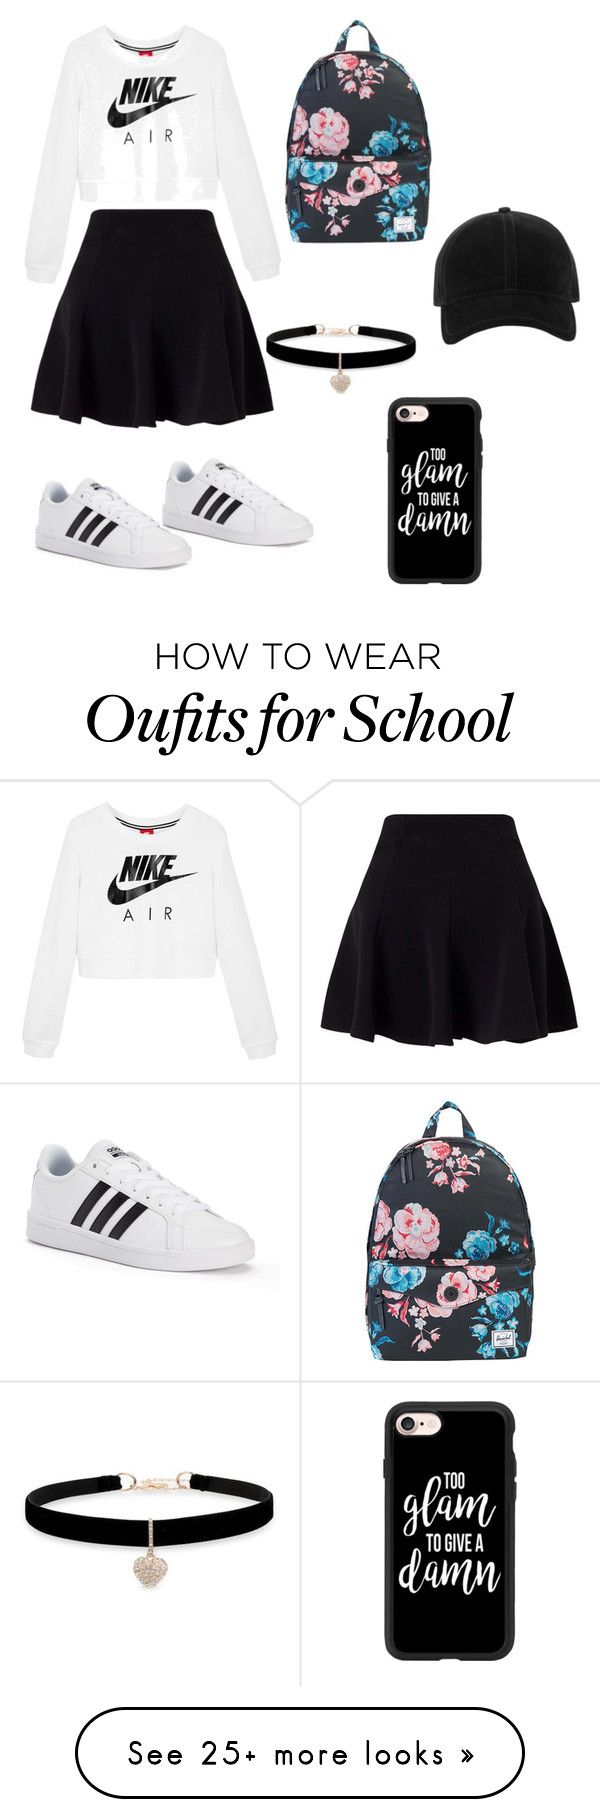 """Casual"" by vrazkha on Polyvore featuring NIKE, Miss Selfridge, adidas, Herschel Supply Co., rag & bone, Casetify and Betsey Johnson"